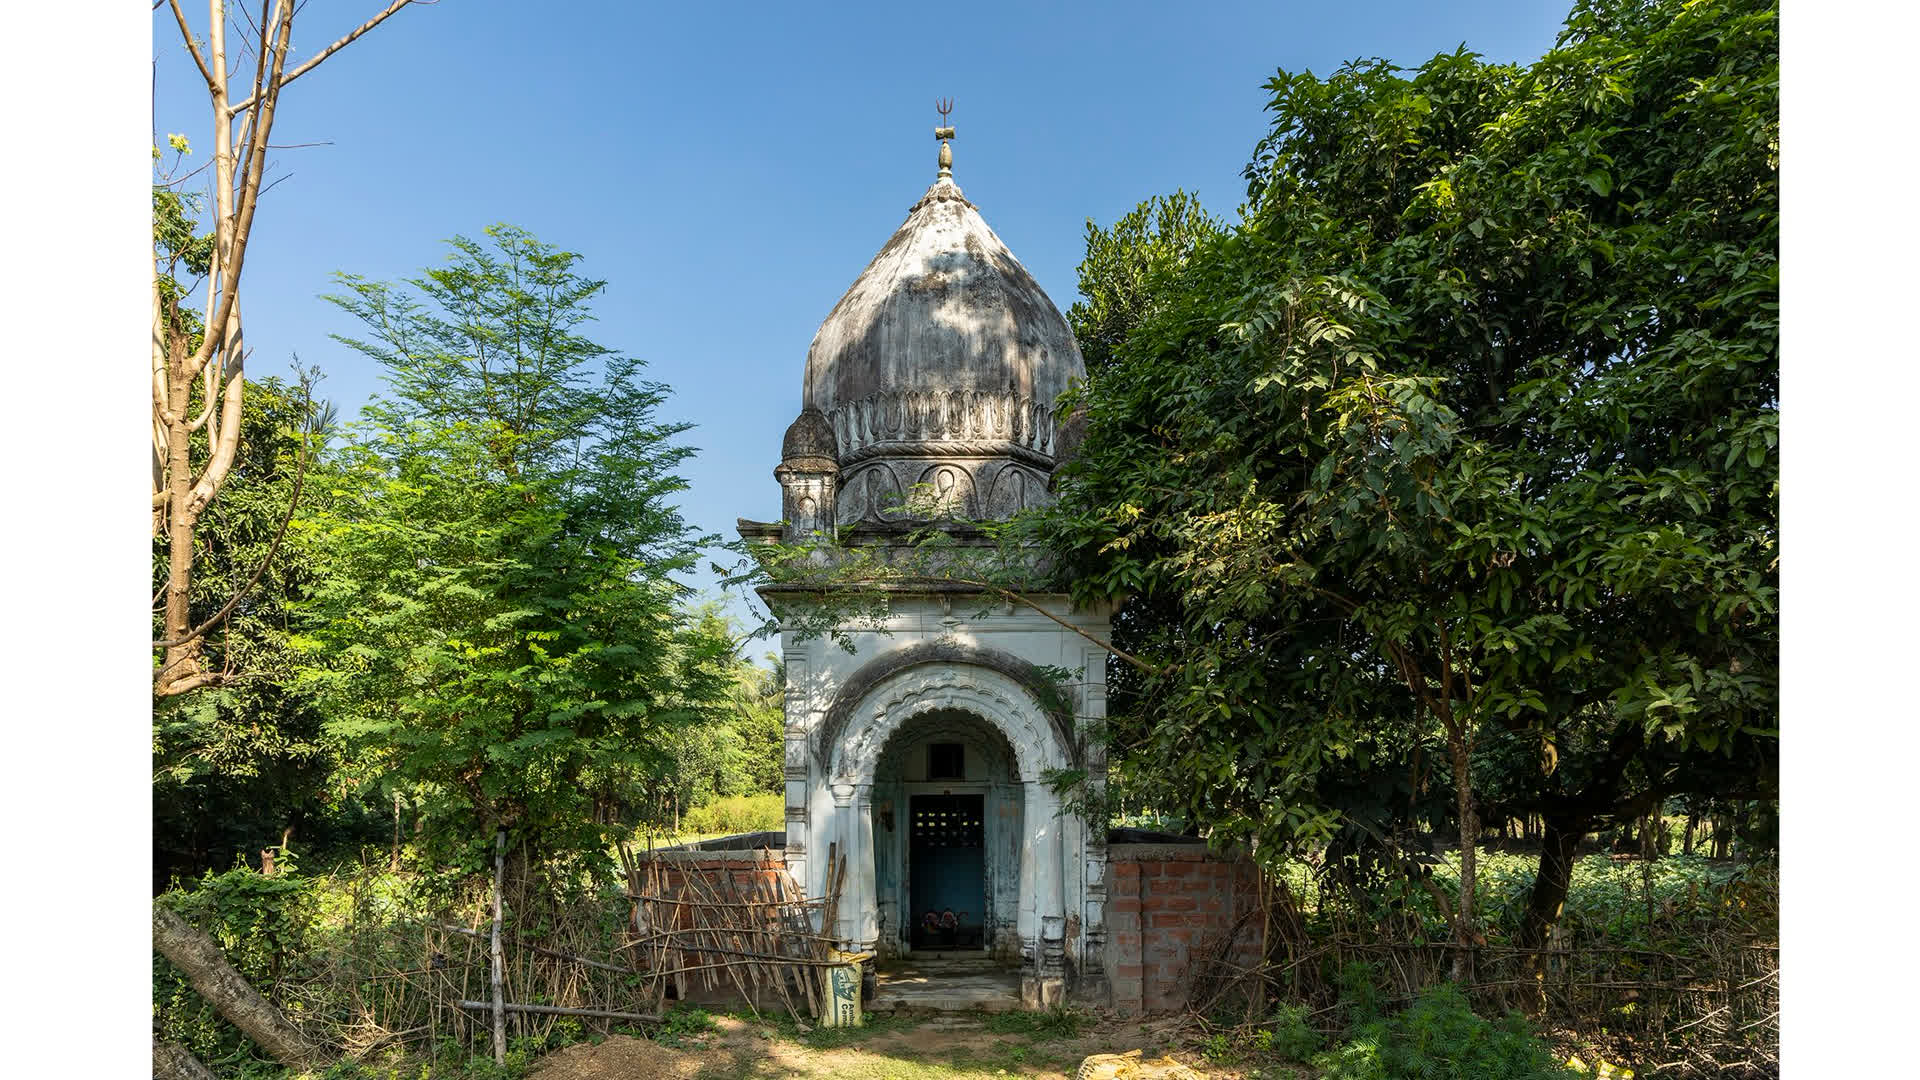 Murshidabad's Temple with a Maratha Connection